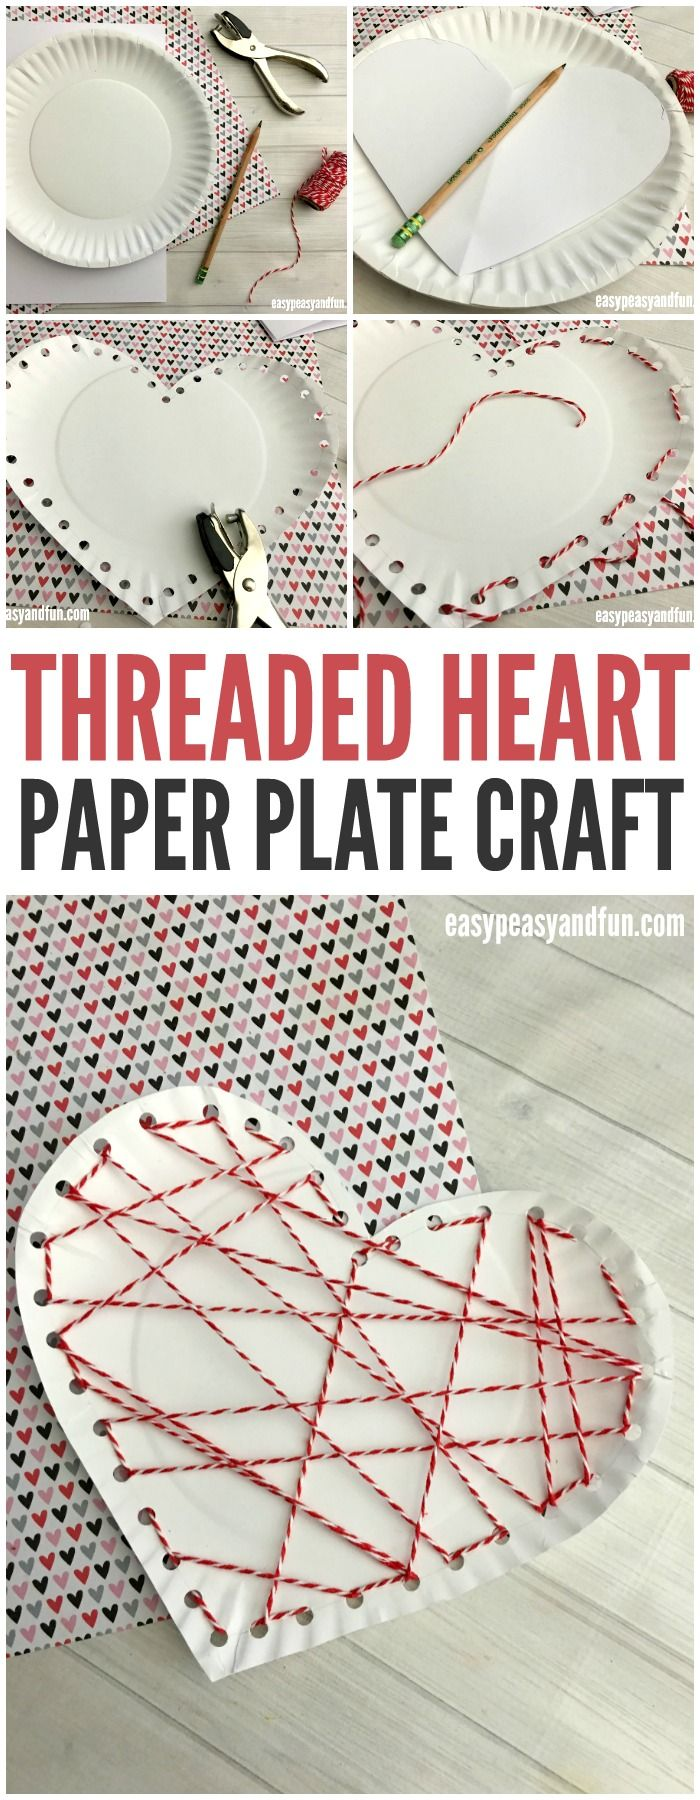 A sweet way to work on fine motor skills this spring! Make a threaded heart paper plate craft for Valentines Day